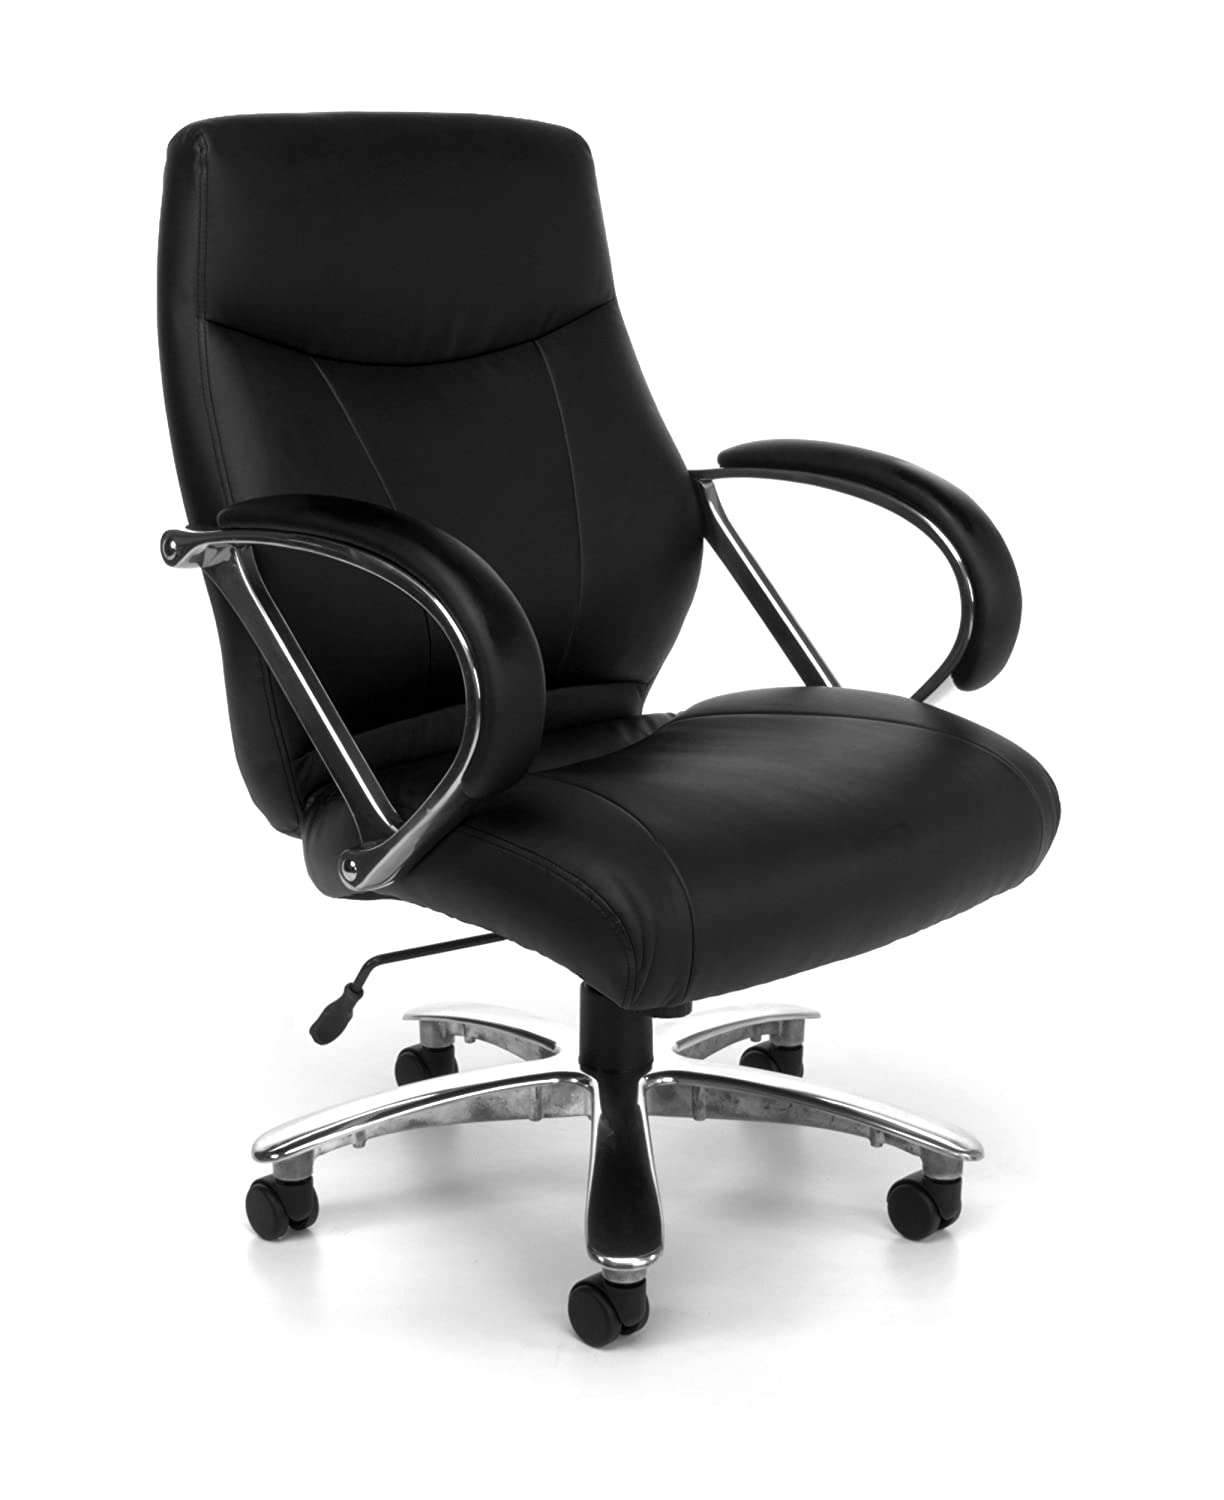 Best Big And Tall Office Chair Big And Tall Office Chairs With 500 Lbs Capacity For Big